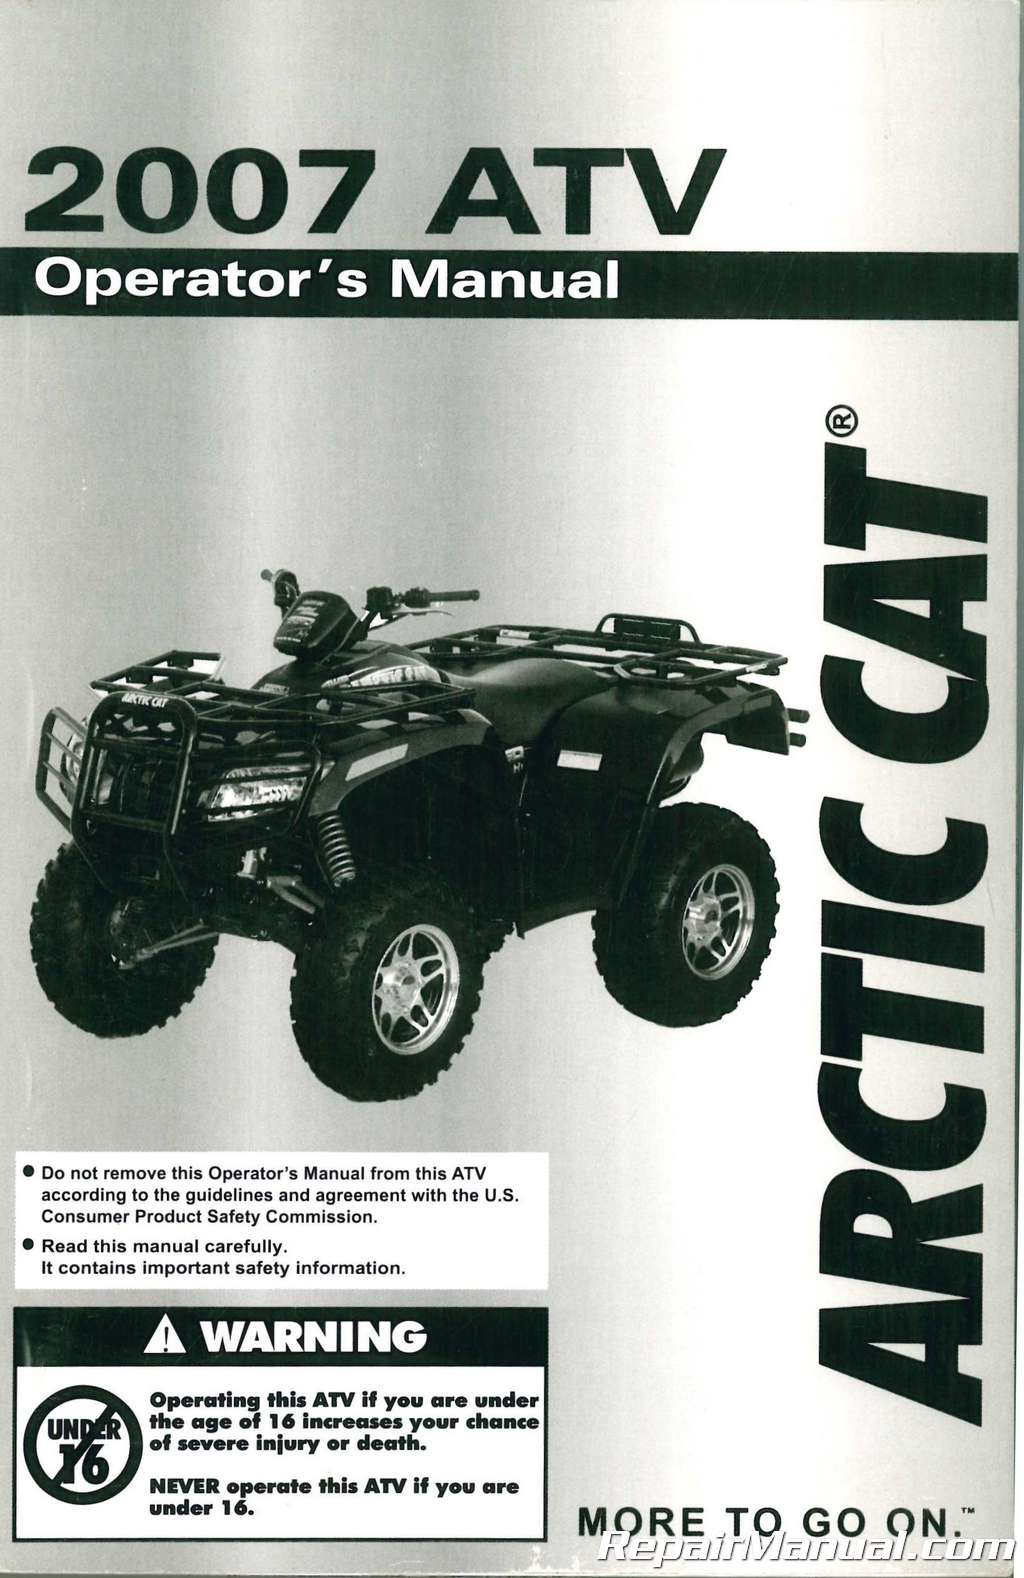 2003 arctic cat atv user manual